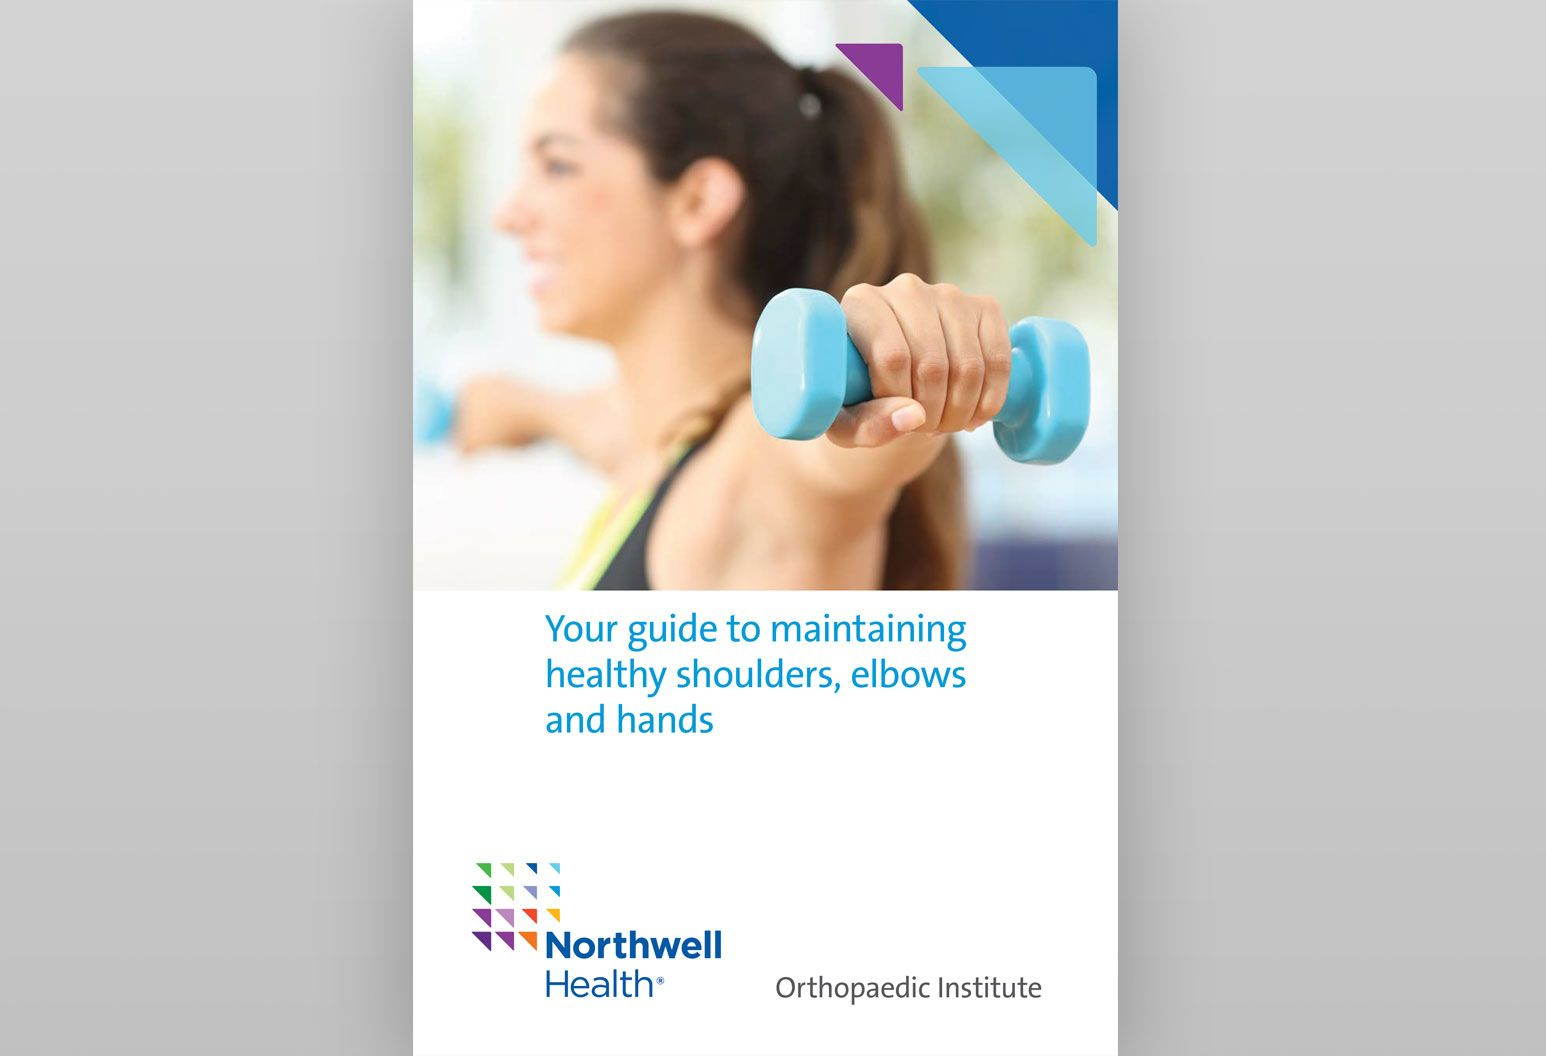 Snapshot of the cover of a Northwell Health ebook titled Your guide to maintaining healthy shoulders, elbows and hands. There is a photo of a young woman doing arm exercises with hand weights.